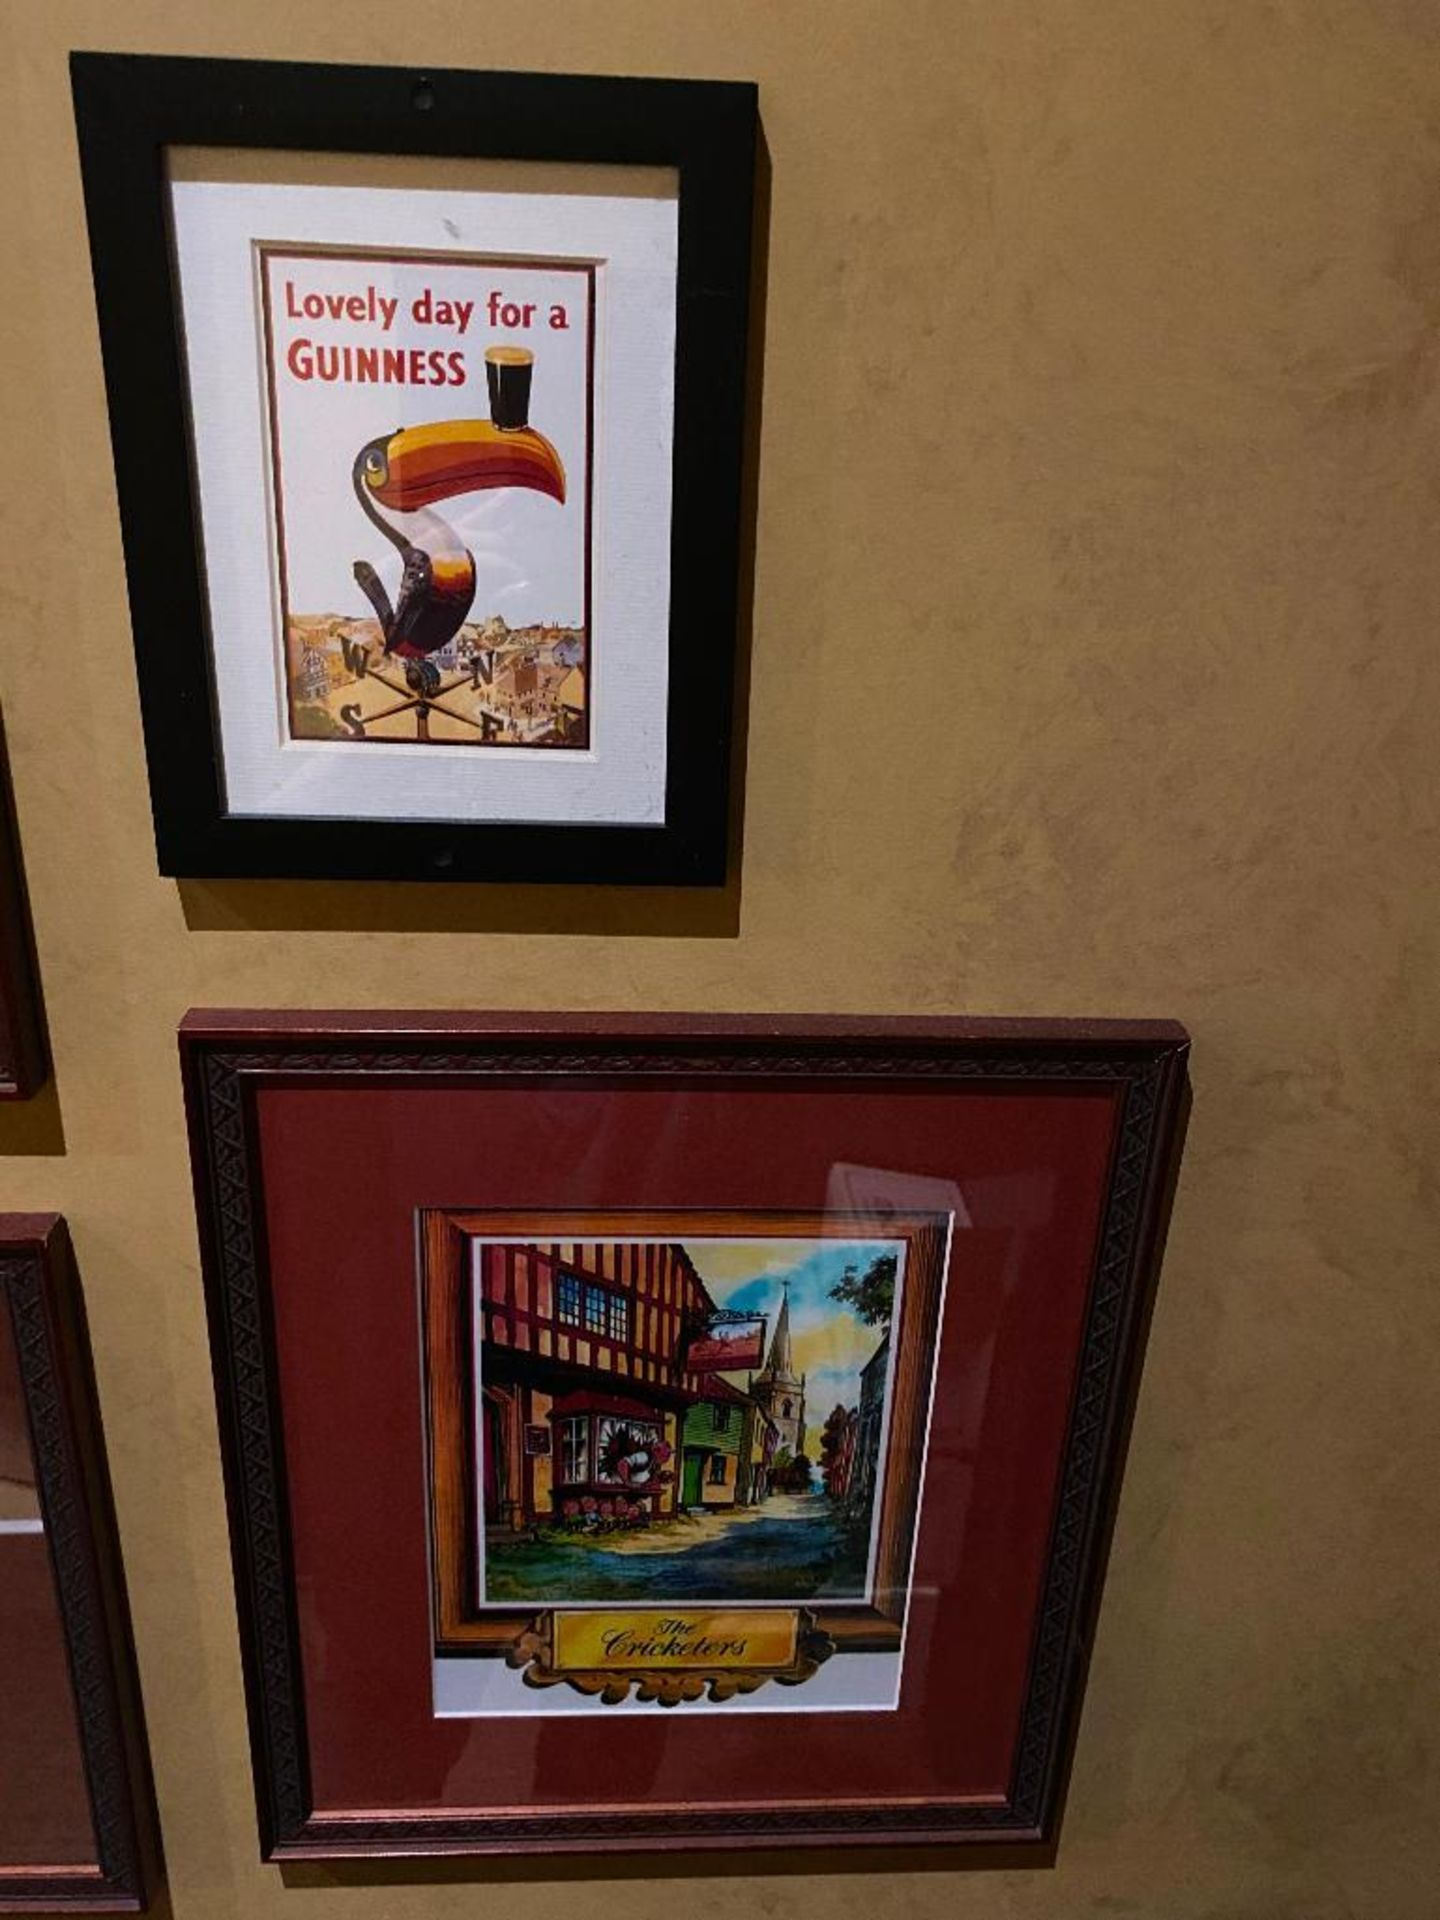 LOT OF (4) FRAMED MEMORABILIA PHOTOS & (1) NEIL'S IRISH PUB PLAQUE - NOTE: REQUIRES REMOVAL FROM WAL - Image 2 of 4